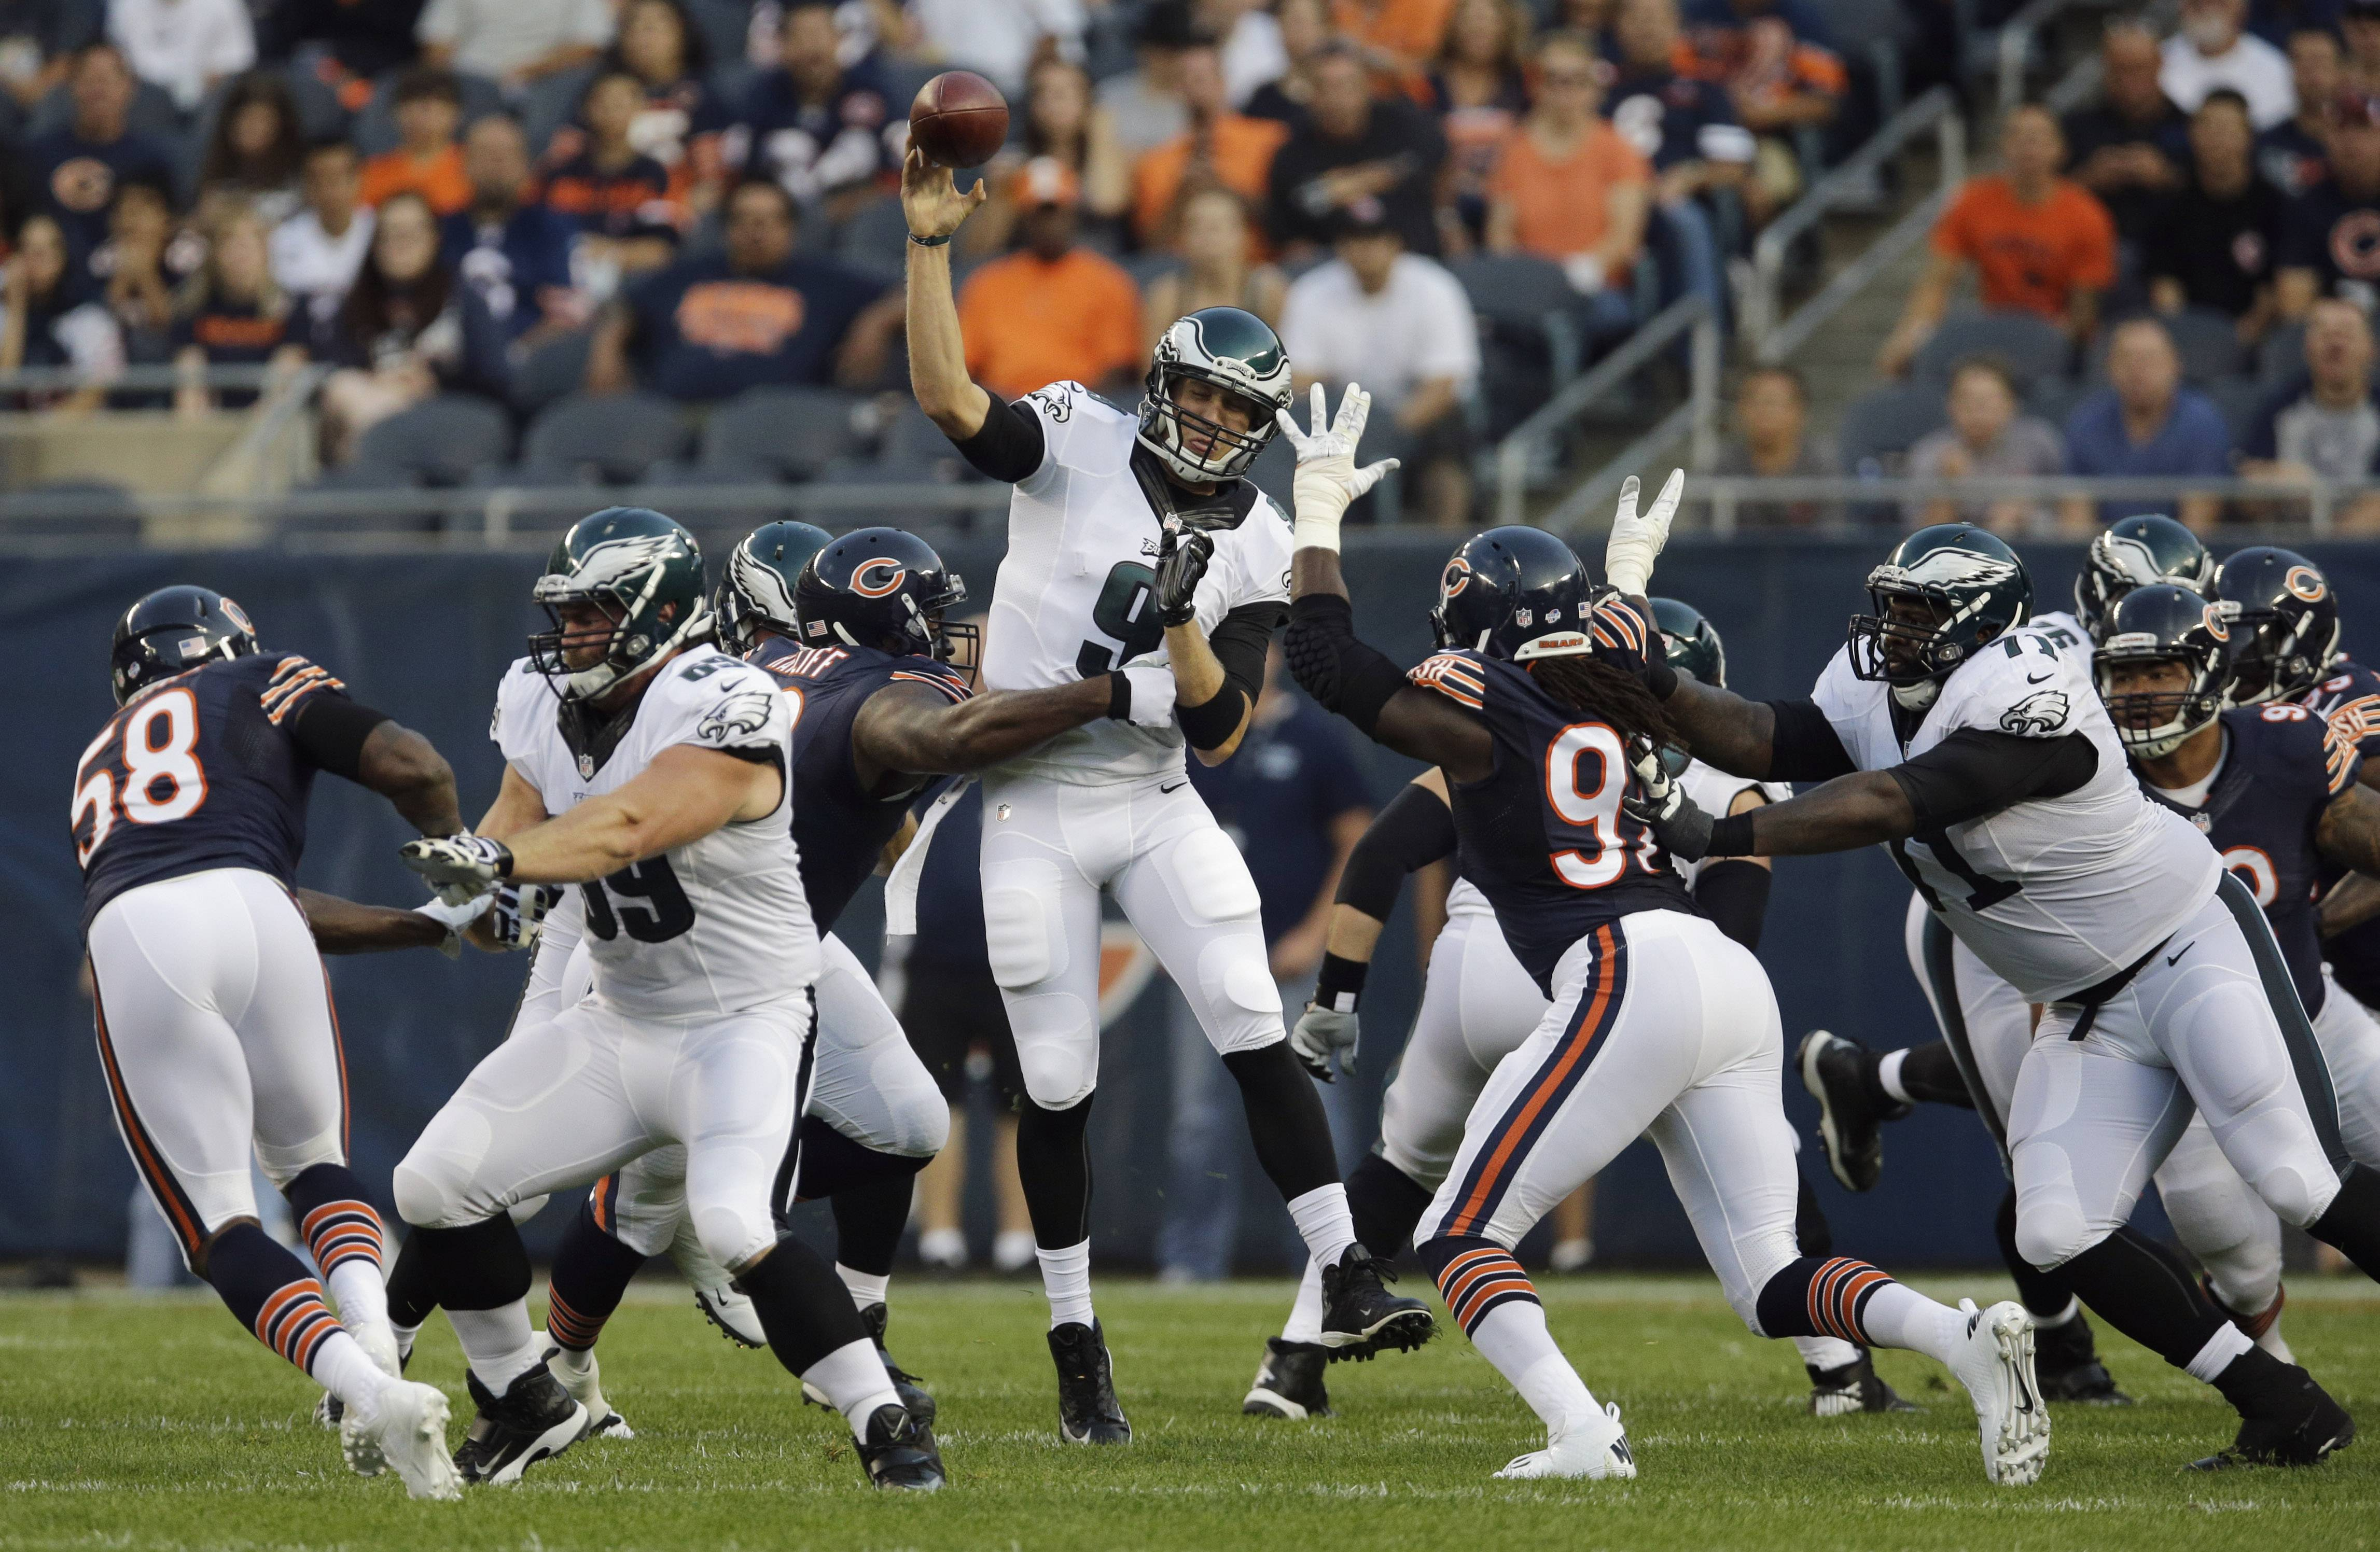 Eagles quarterback Nick Foles throws a pass under pressure from Bears defensive tackle Jeremiah Ratliff during Friday's preseason opener at Soldier Field.